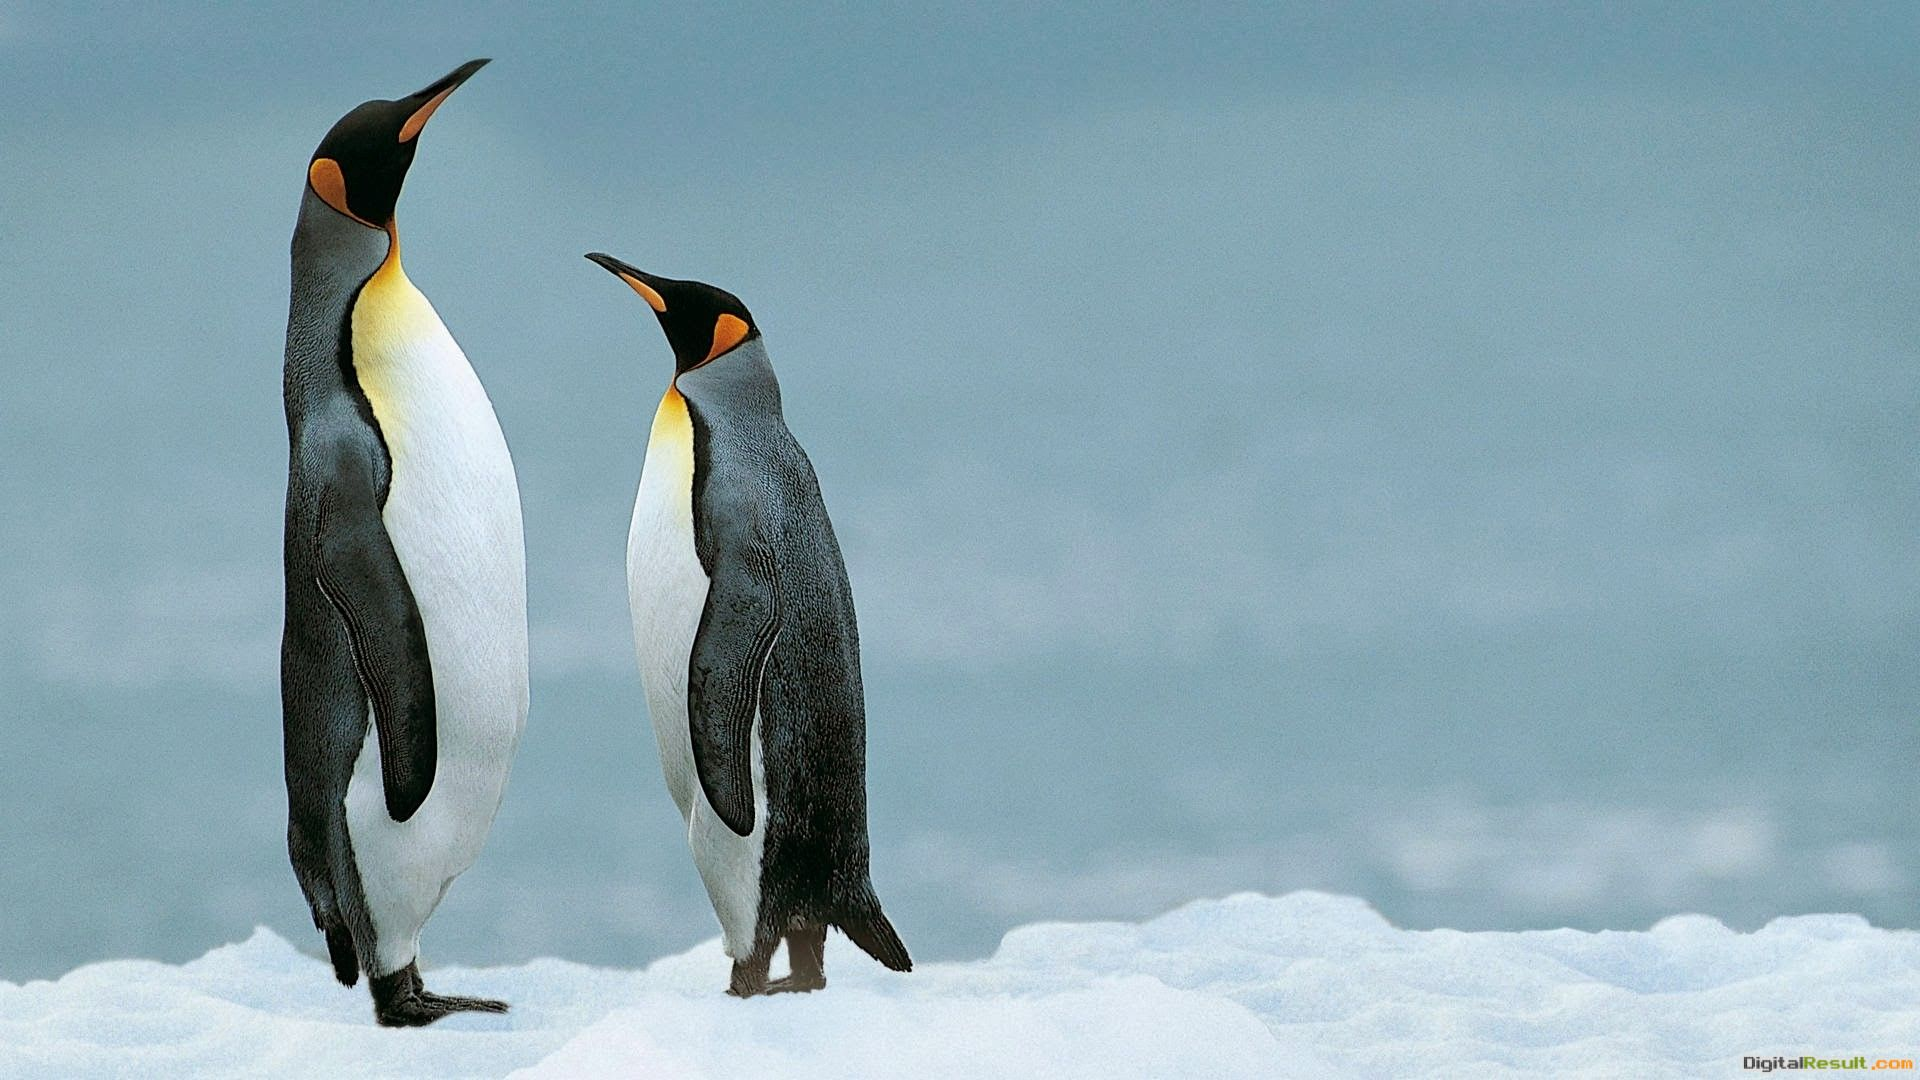 Young Penguin Couple in Antarctica HD Wallpaper | HD Famous Wallpapers 1062